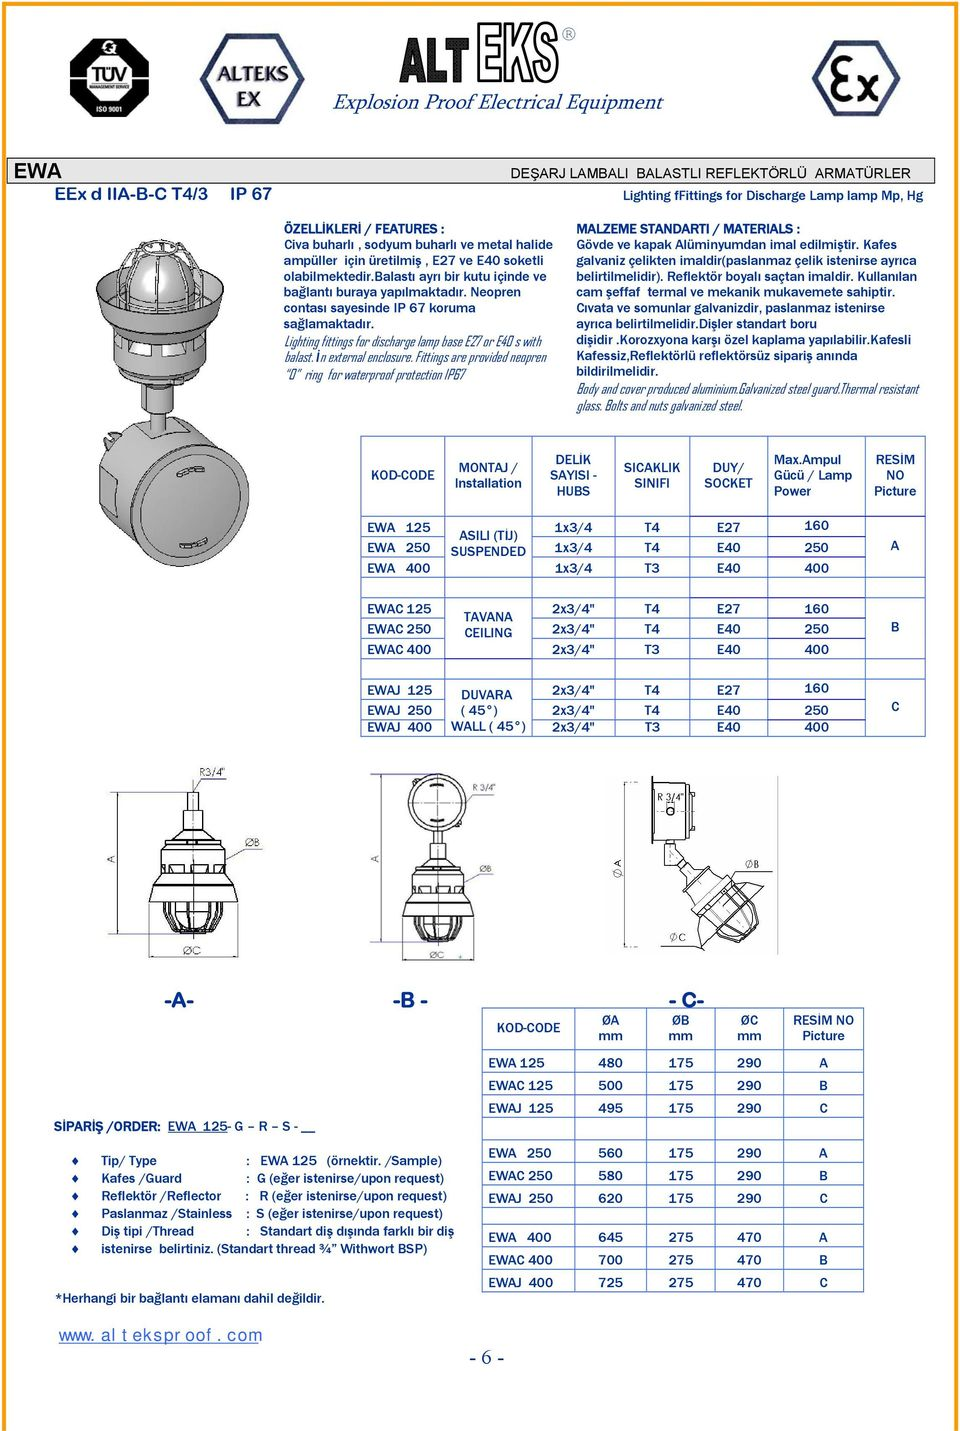 Lighting fittings for discharge lamp base E27 or E40 s with balast. İn external enclosure.